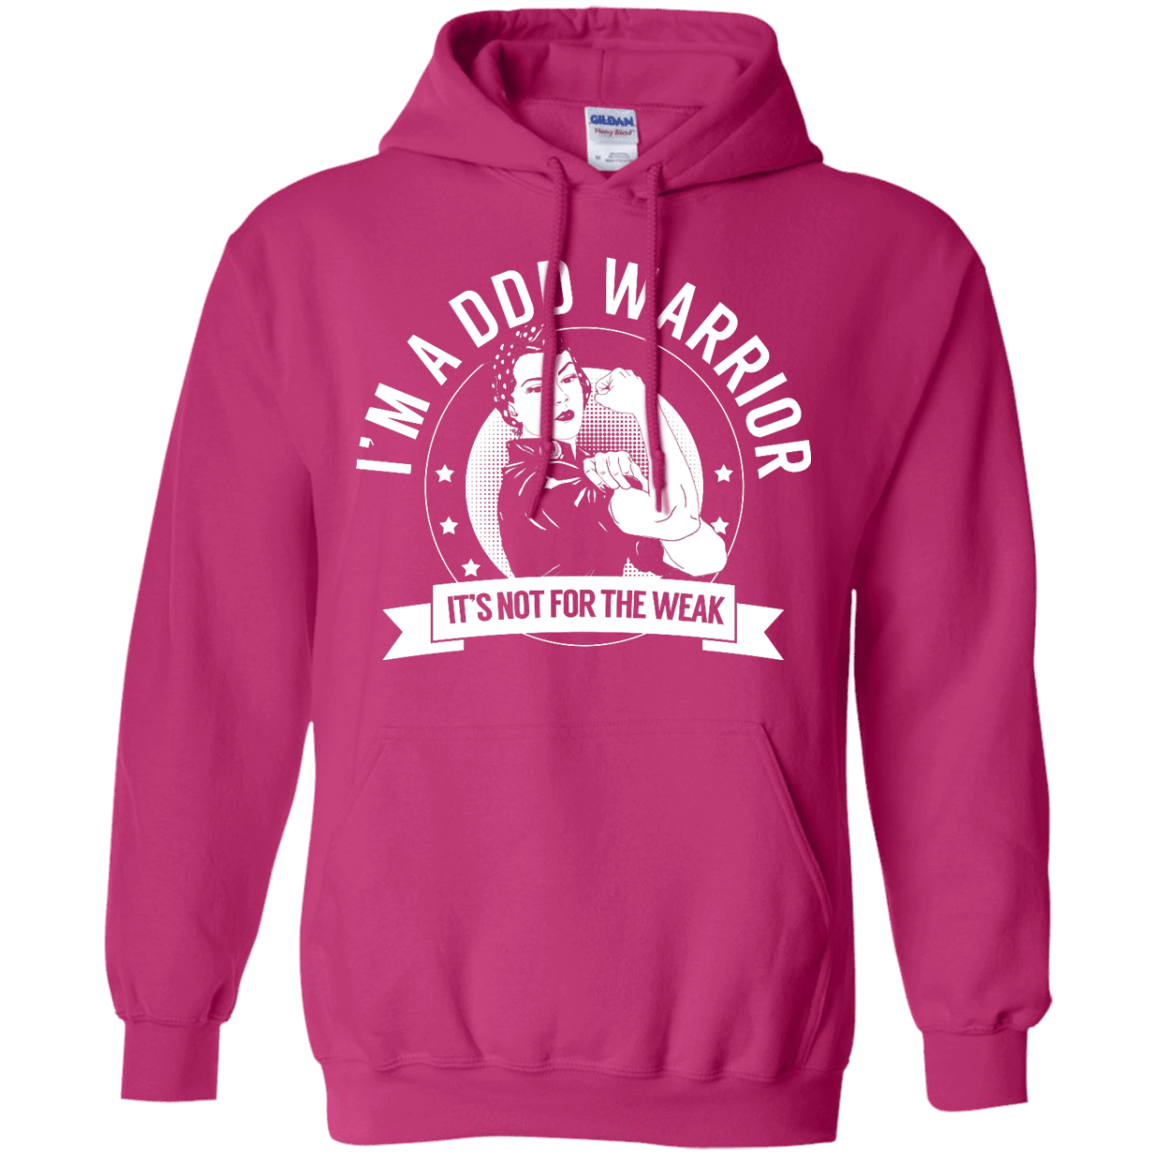 Degenerative Disc Disease - DDD Warrior Not for the Weak Pullover Hoodie 8 oz - The Unchargeables